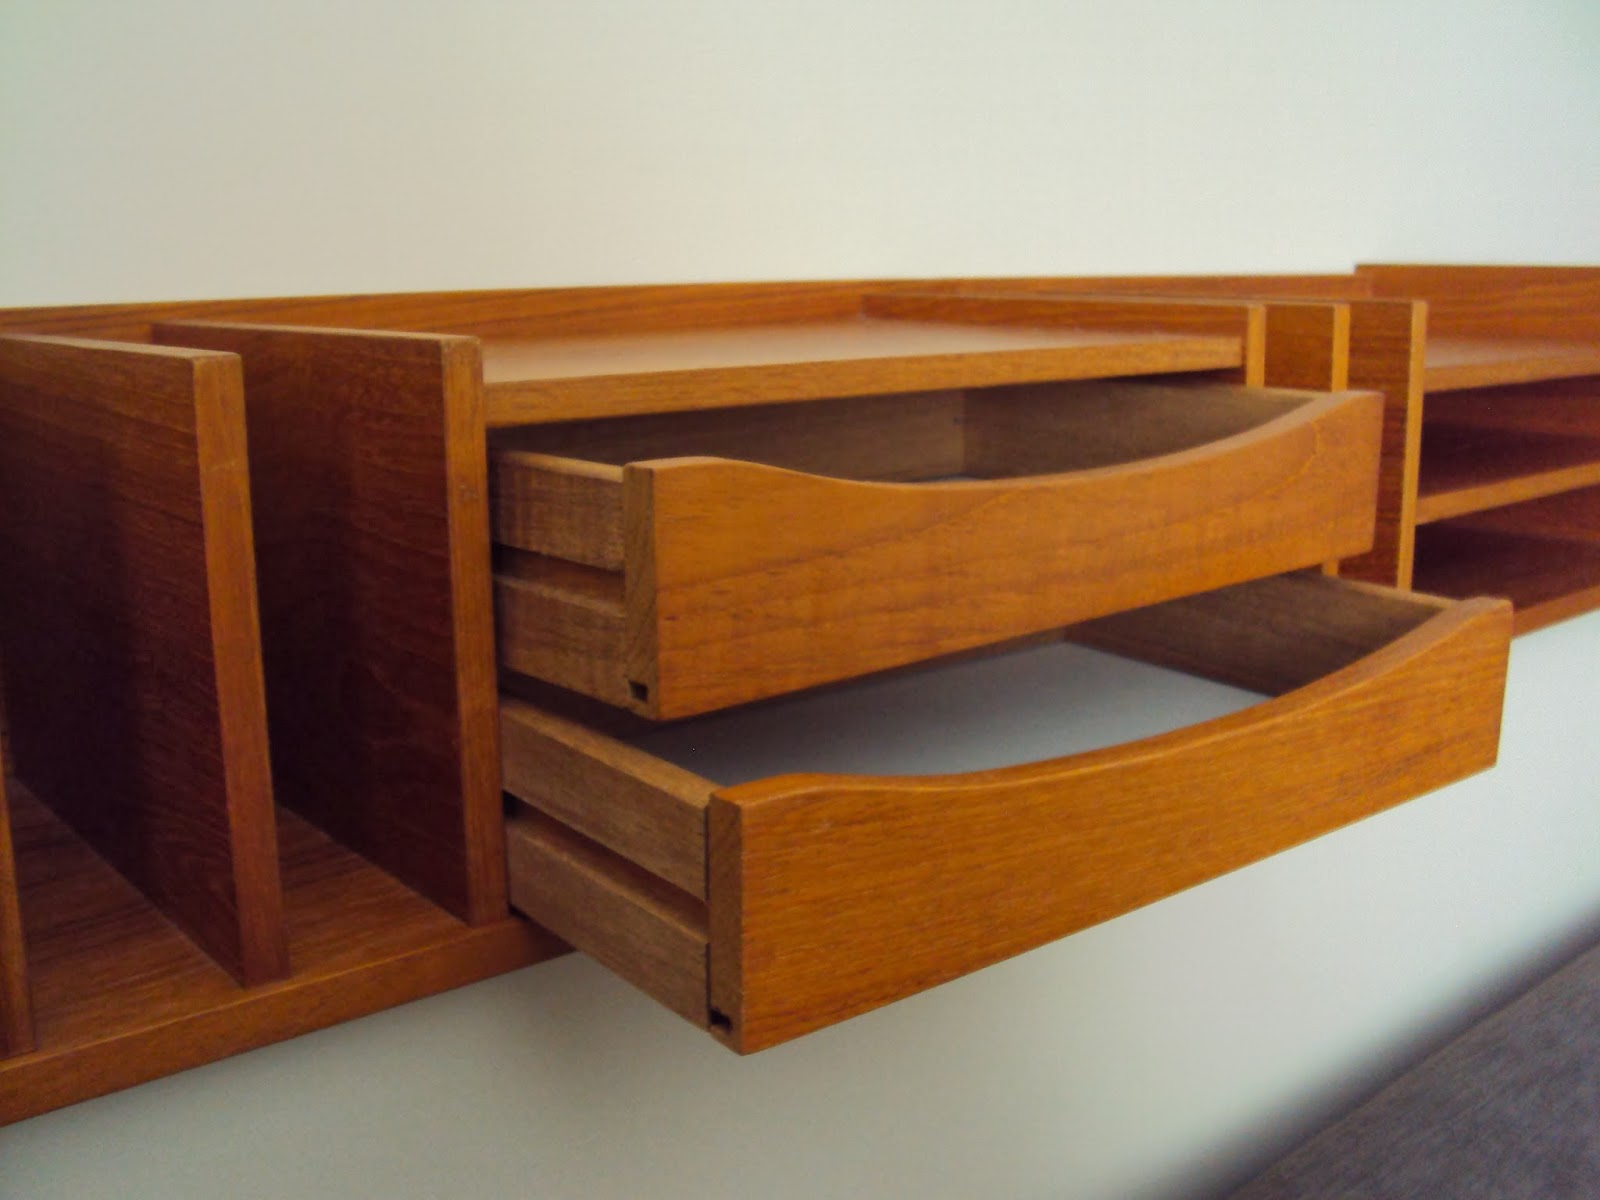 Red-Cent Modern: Pedersen & Hansen Teak Desk Organizer - SOLD!